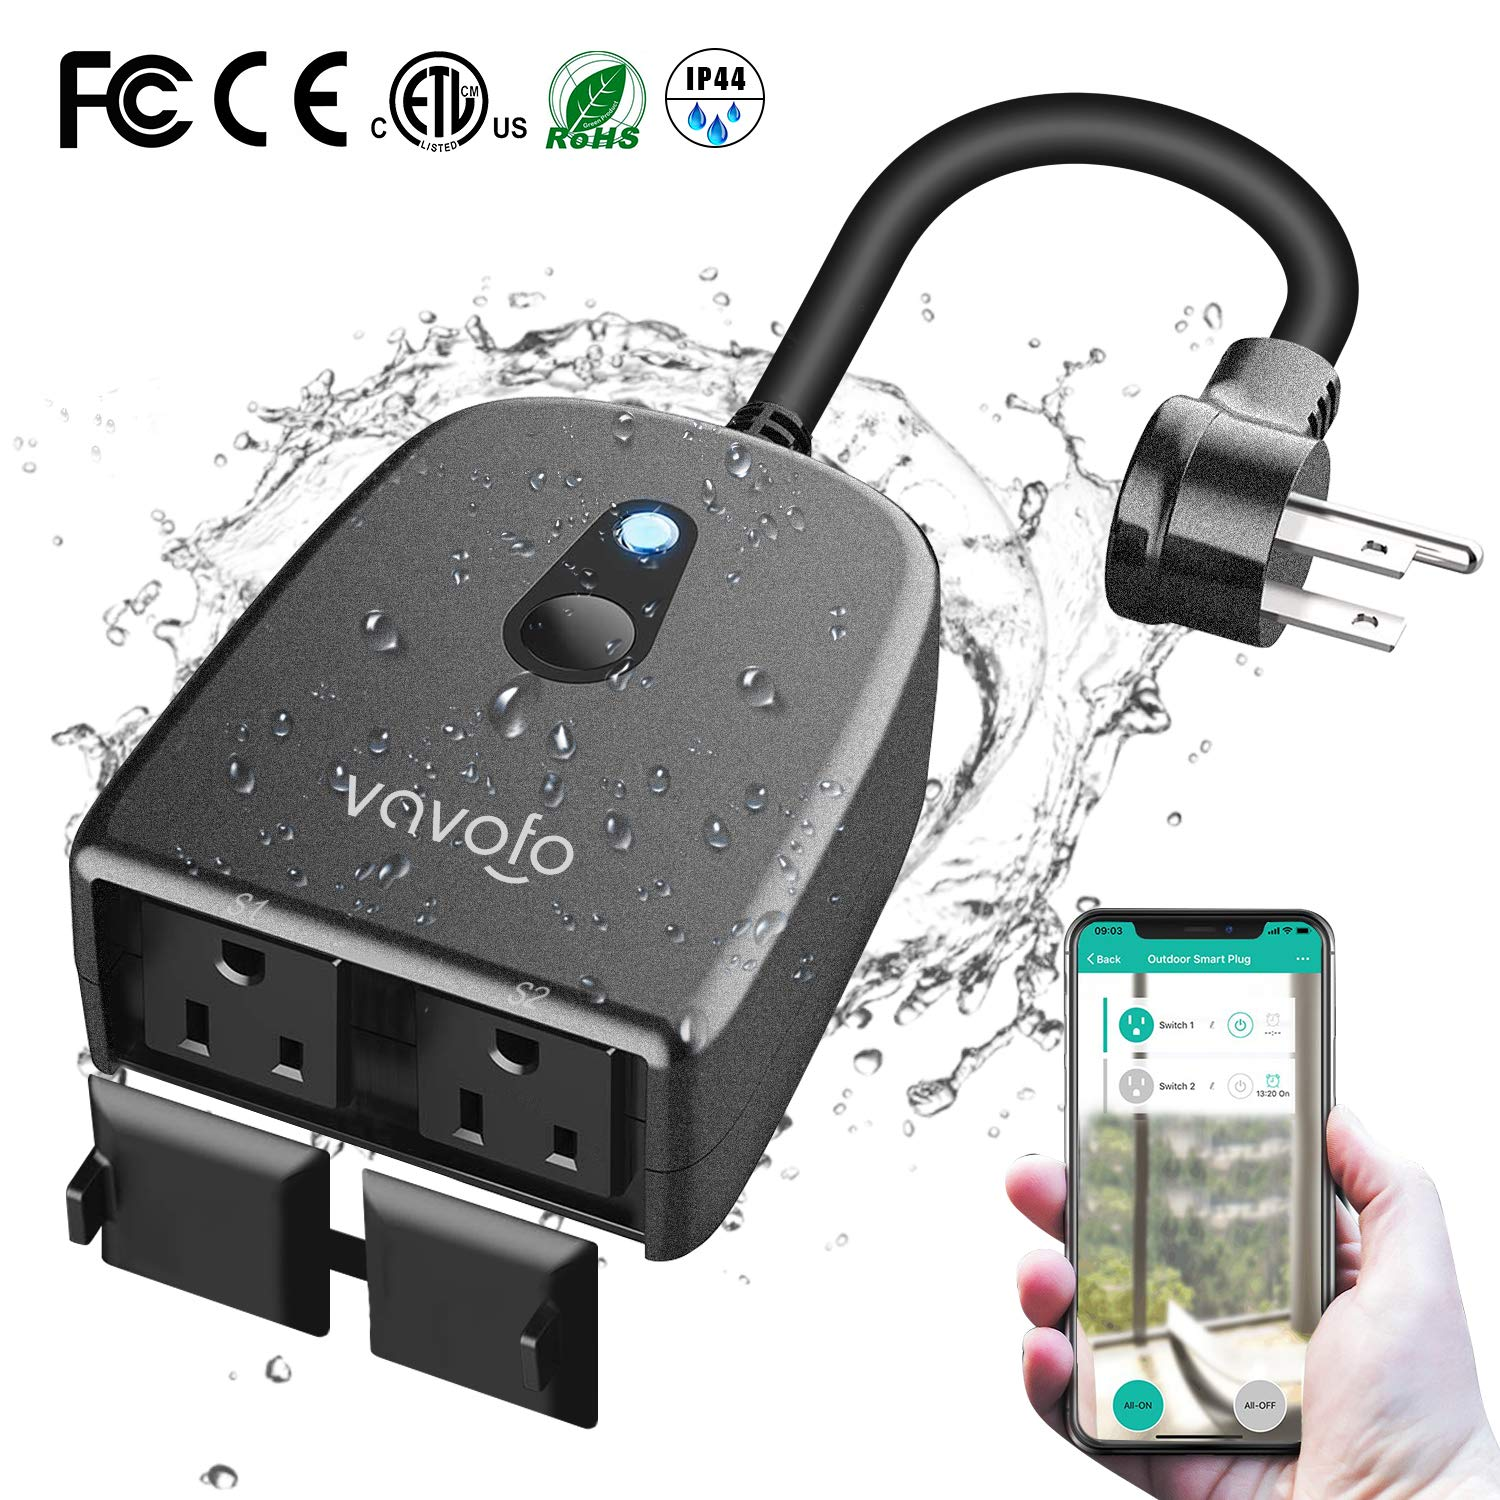 VAVOFO Outdoor Smart Plug, WiFi Outlet with 2 Sockets, Compatible with Alexa Google Home, IP44 Waterproof, Wireless Remote Control Timer & Countdown by Smartphone APP by VAVOFO